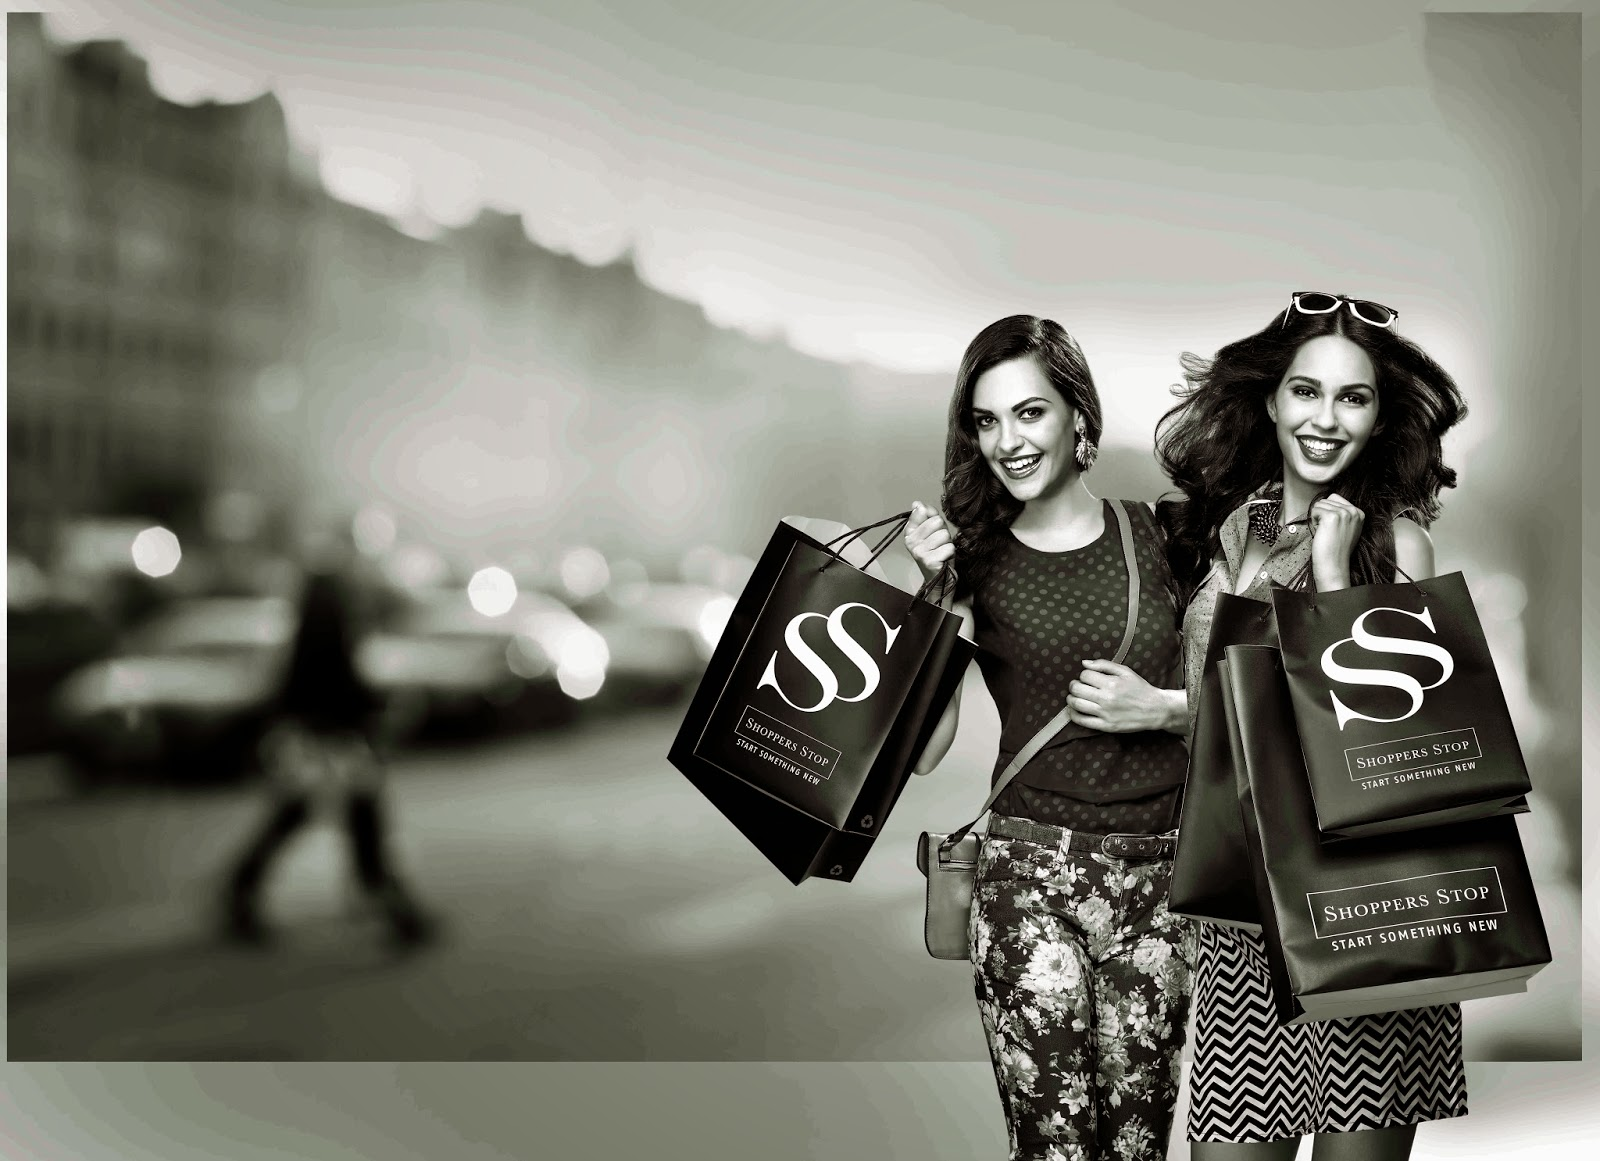 Low Prices' Up To 51% off Sale at Shoppers Stop Begins on July 5